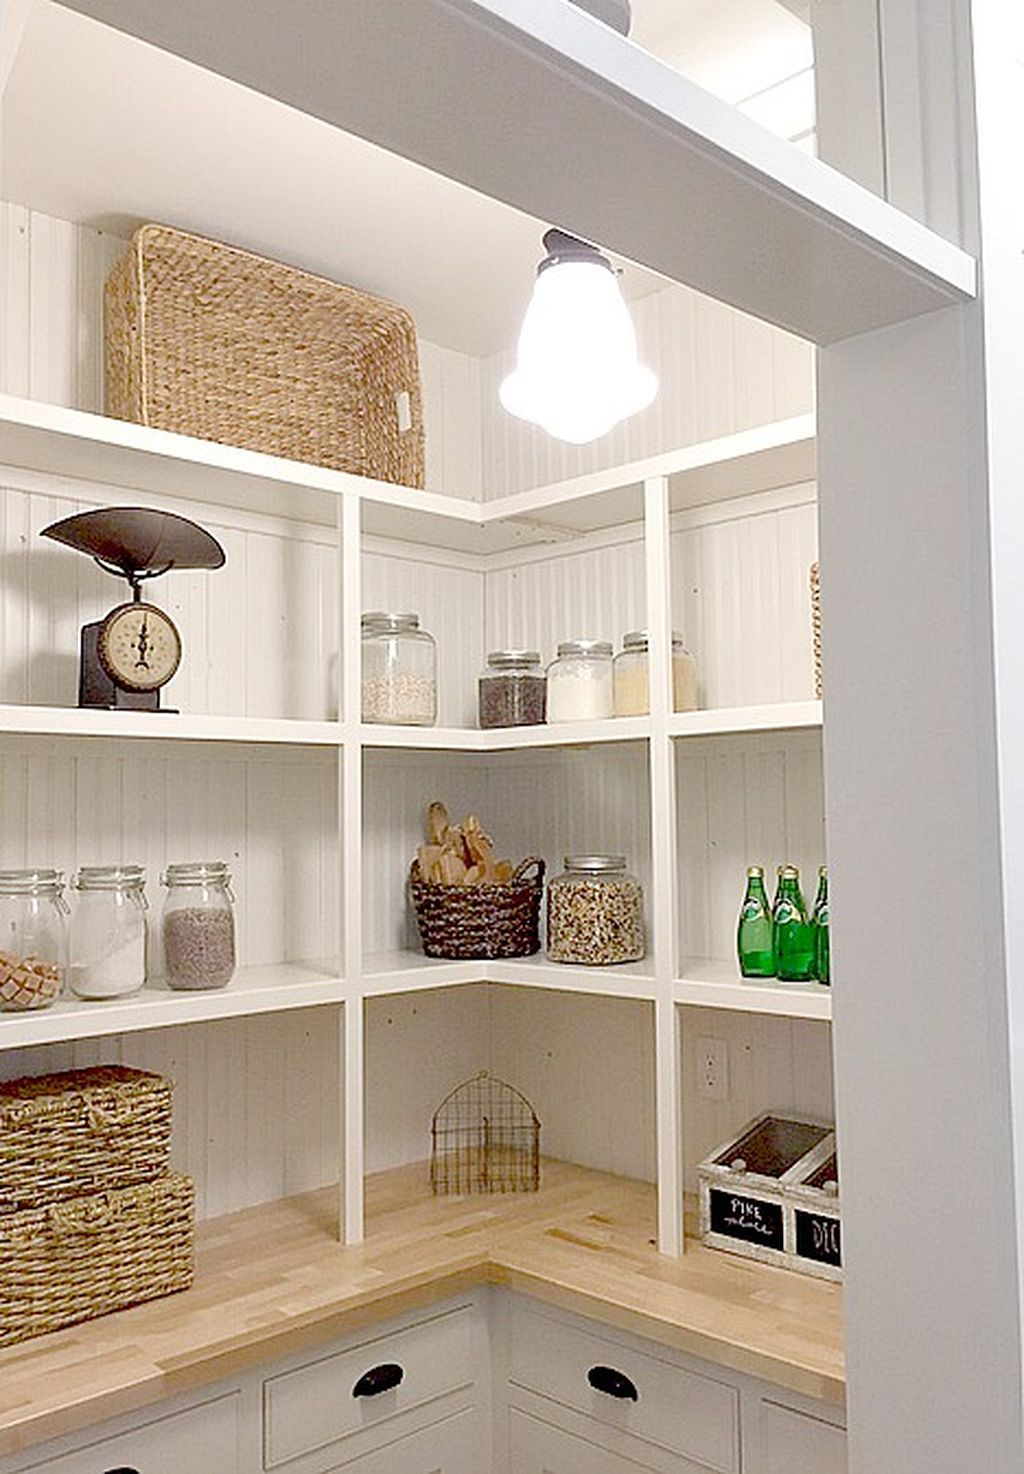 cool 60 pantry organization ideas for the home pantry pinterest schmutzschleuse. Black Bedroom Furniture Sets. Home Design Ideas